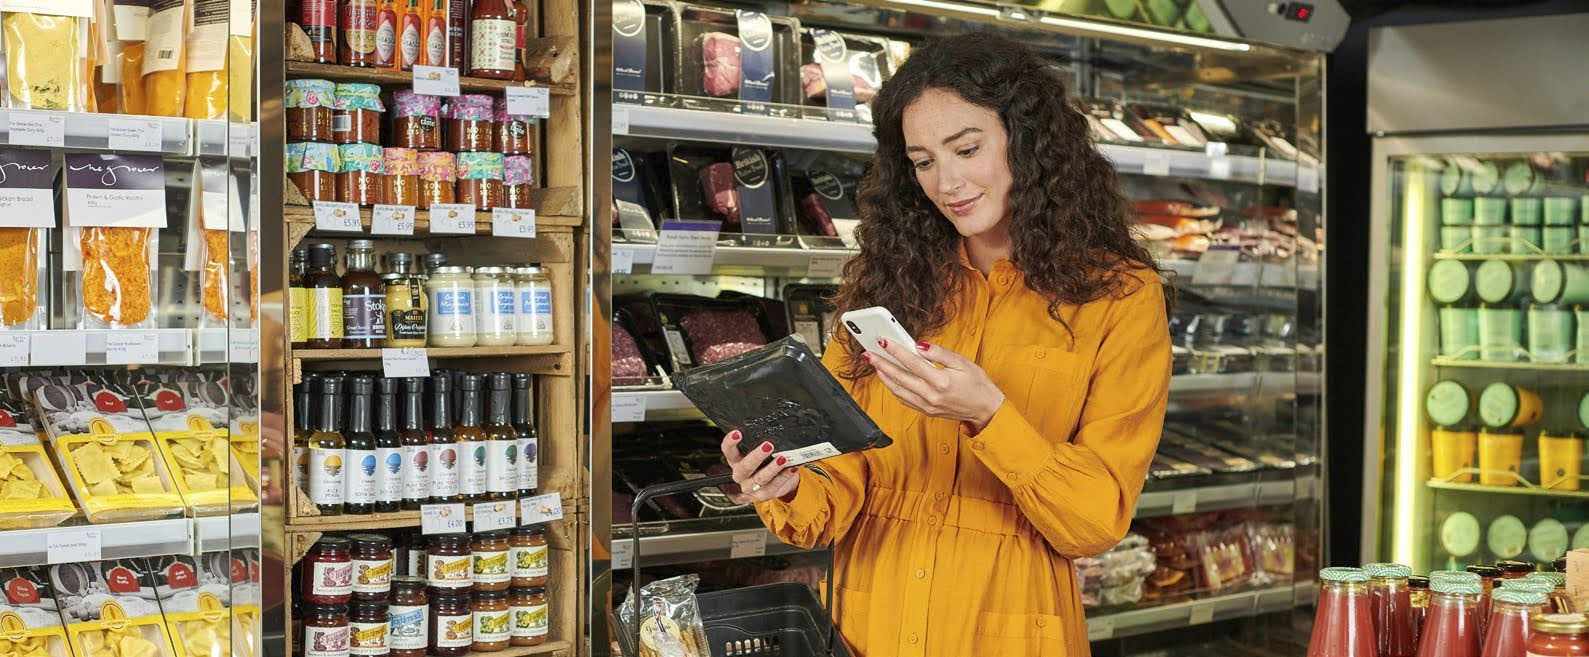 Enhancing the In-Store Experience